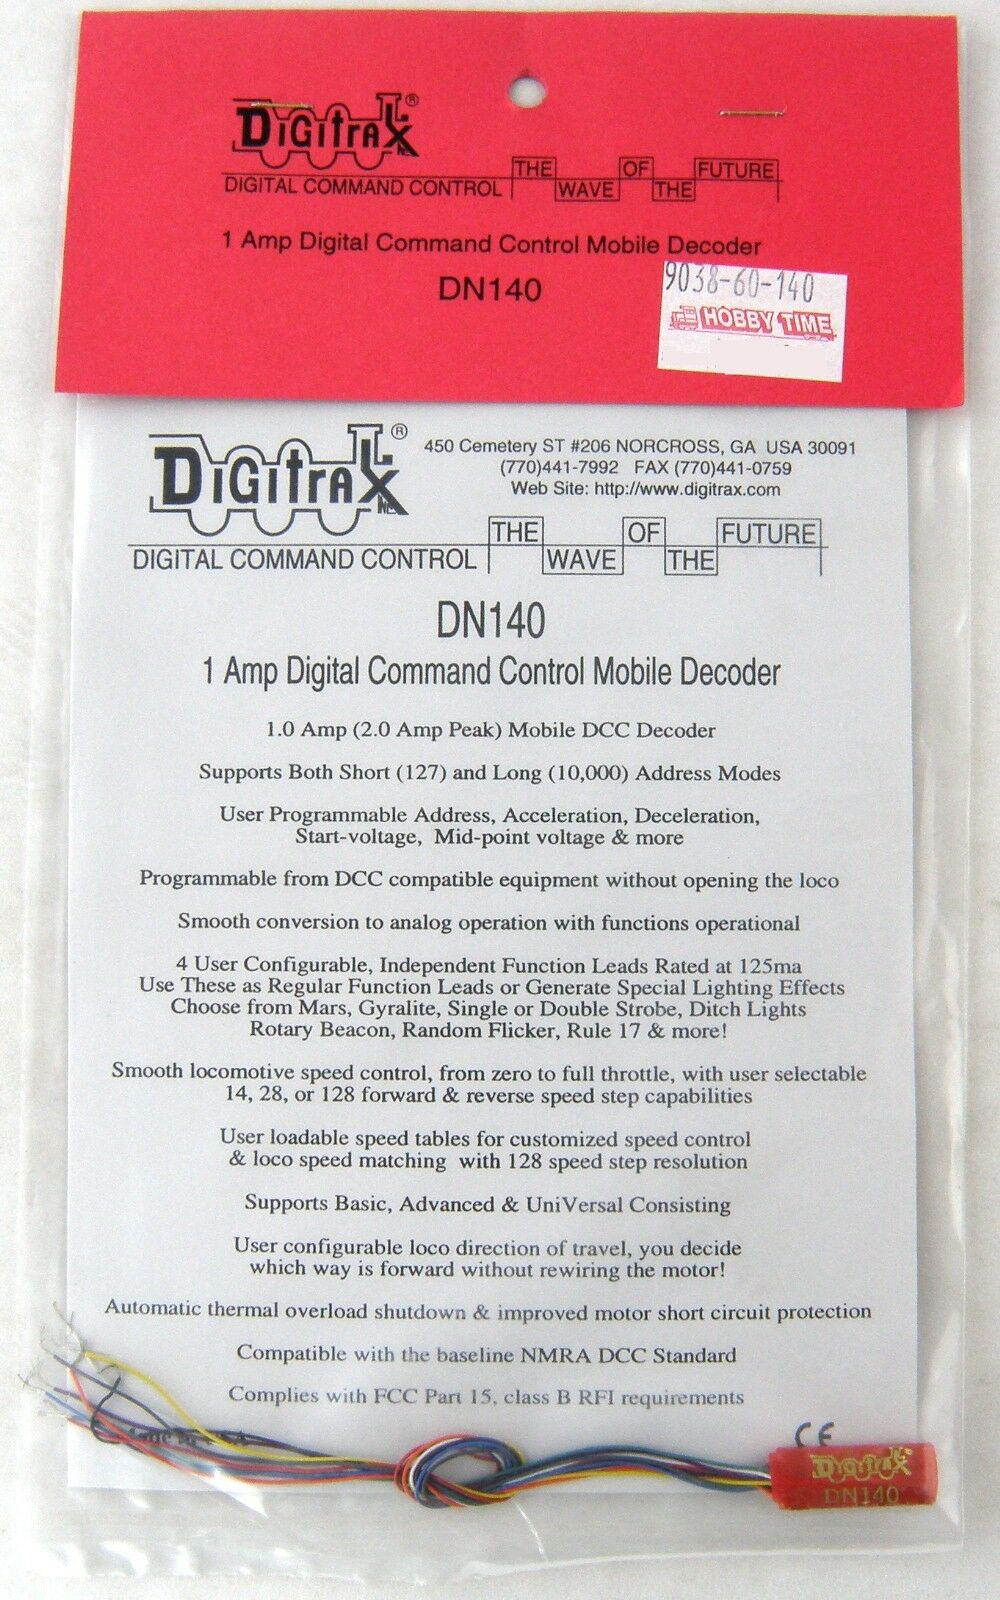 Digitrax DN140 DCC Mobile Decoder (1 Amp)